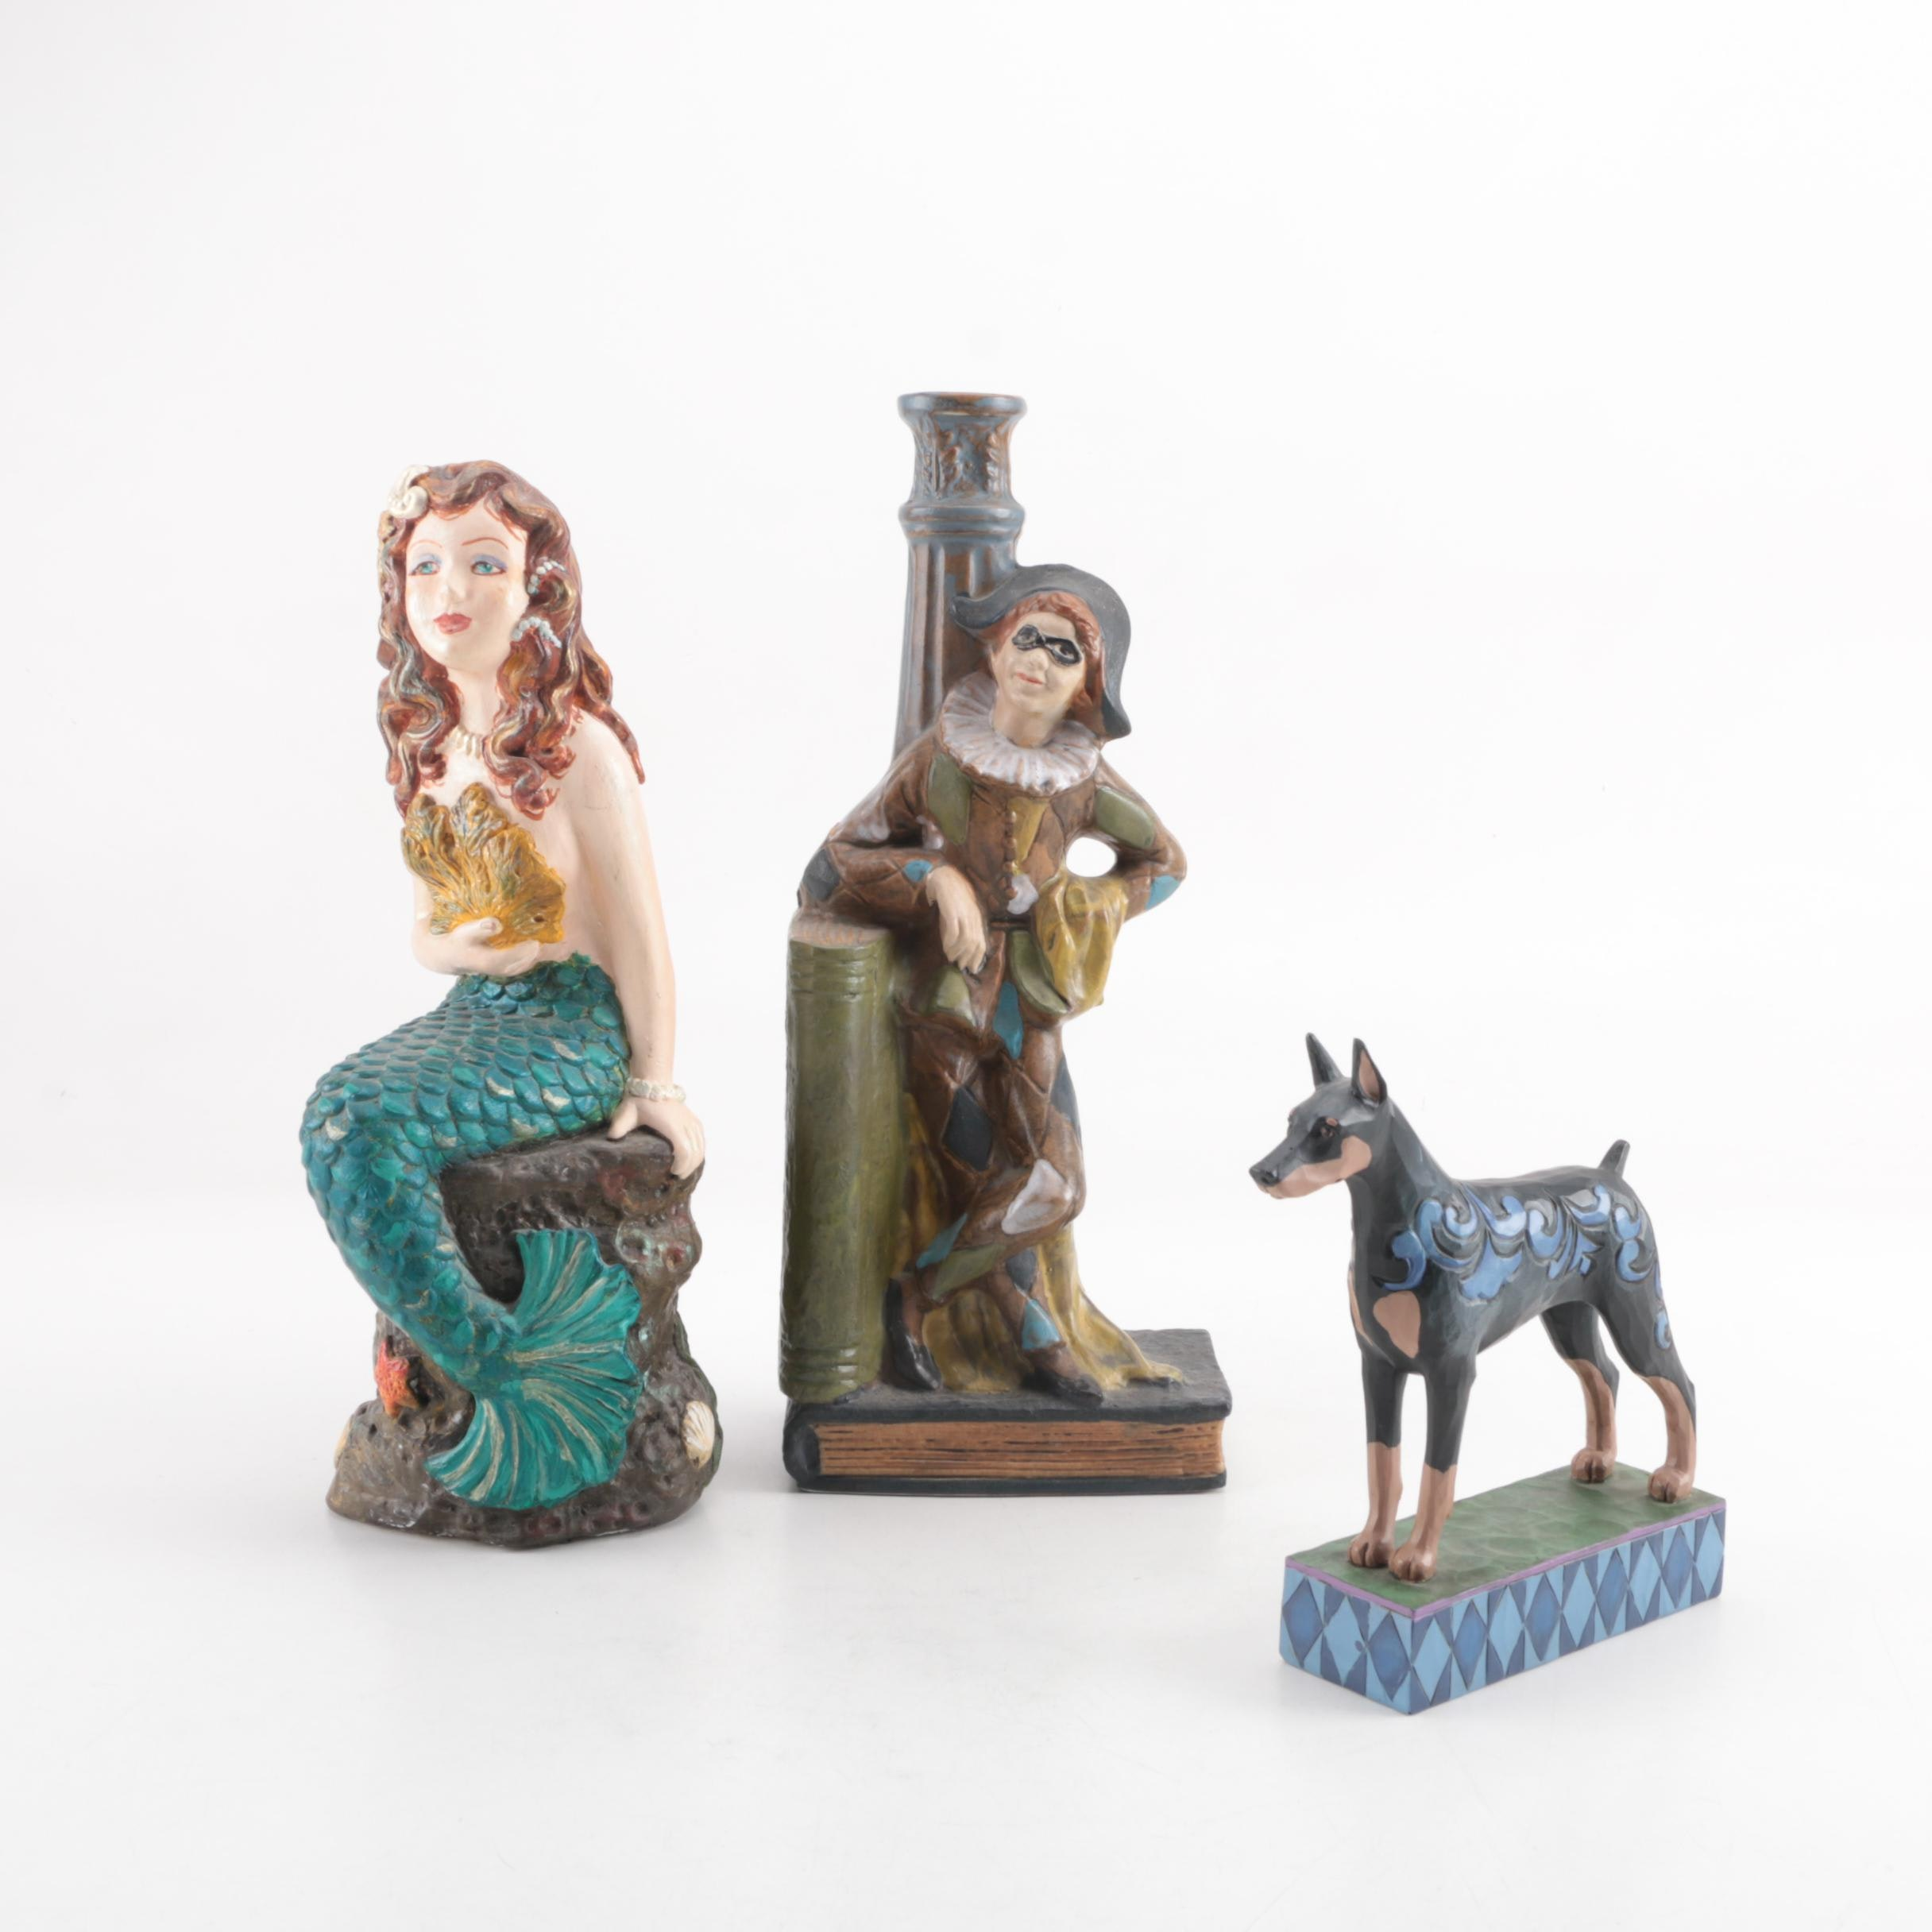 Ceramic Figurines and Jester Figural Candle Holder Featuring Jim Shore